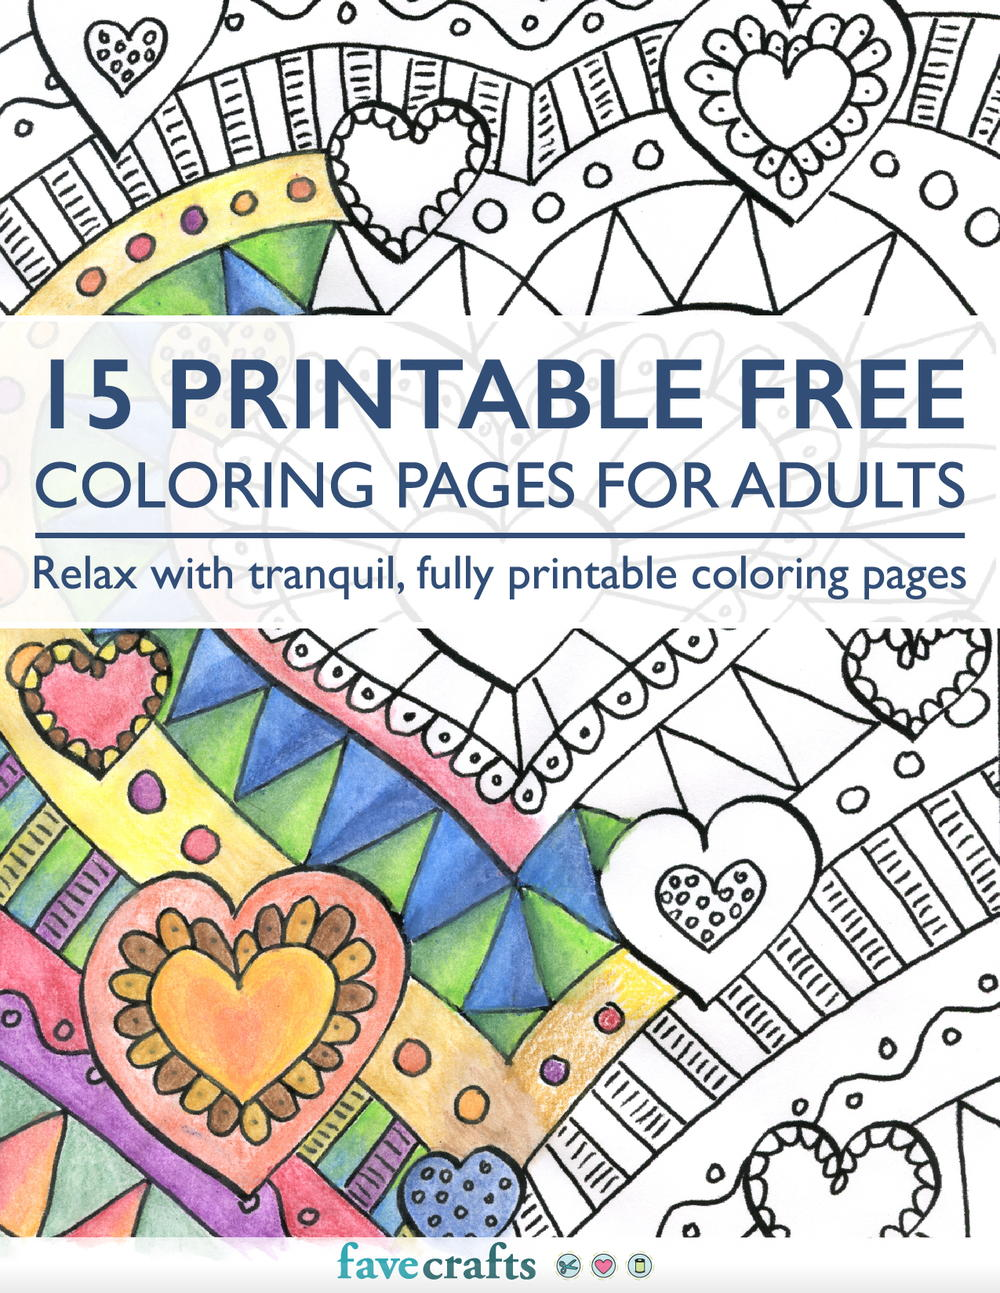 15 Printable Free Coloring Pages